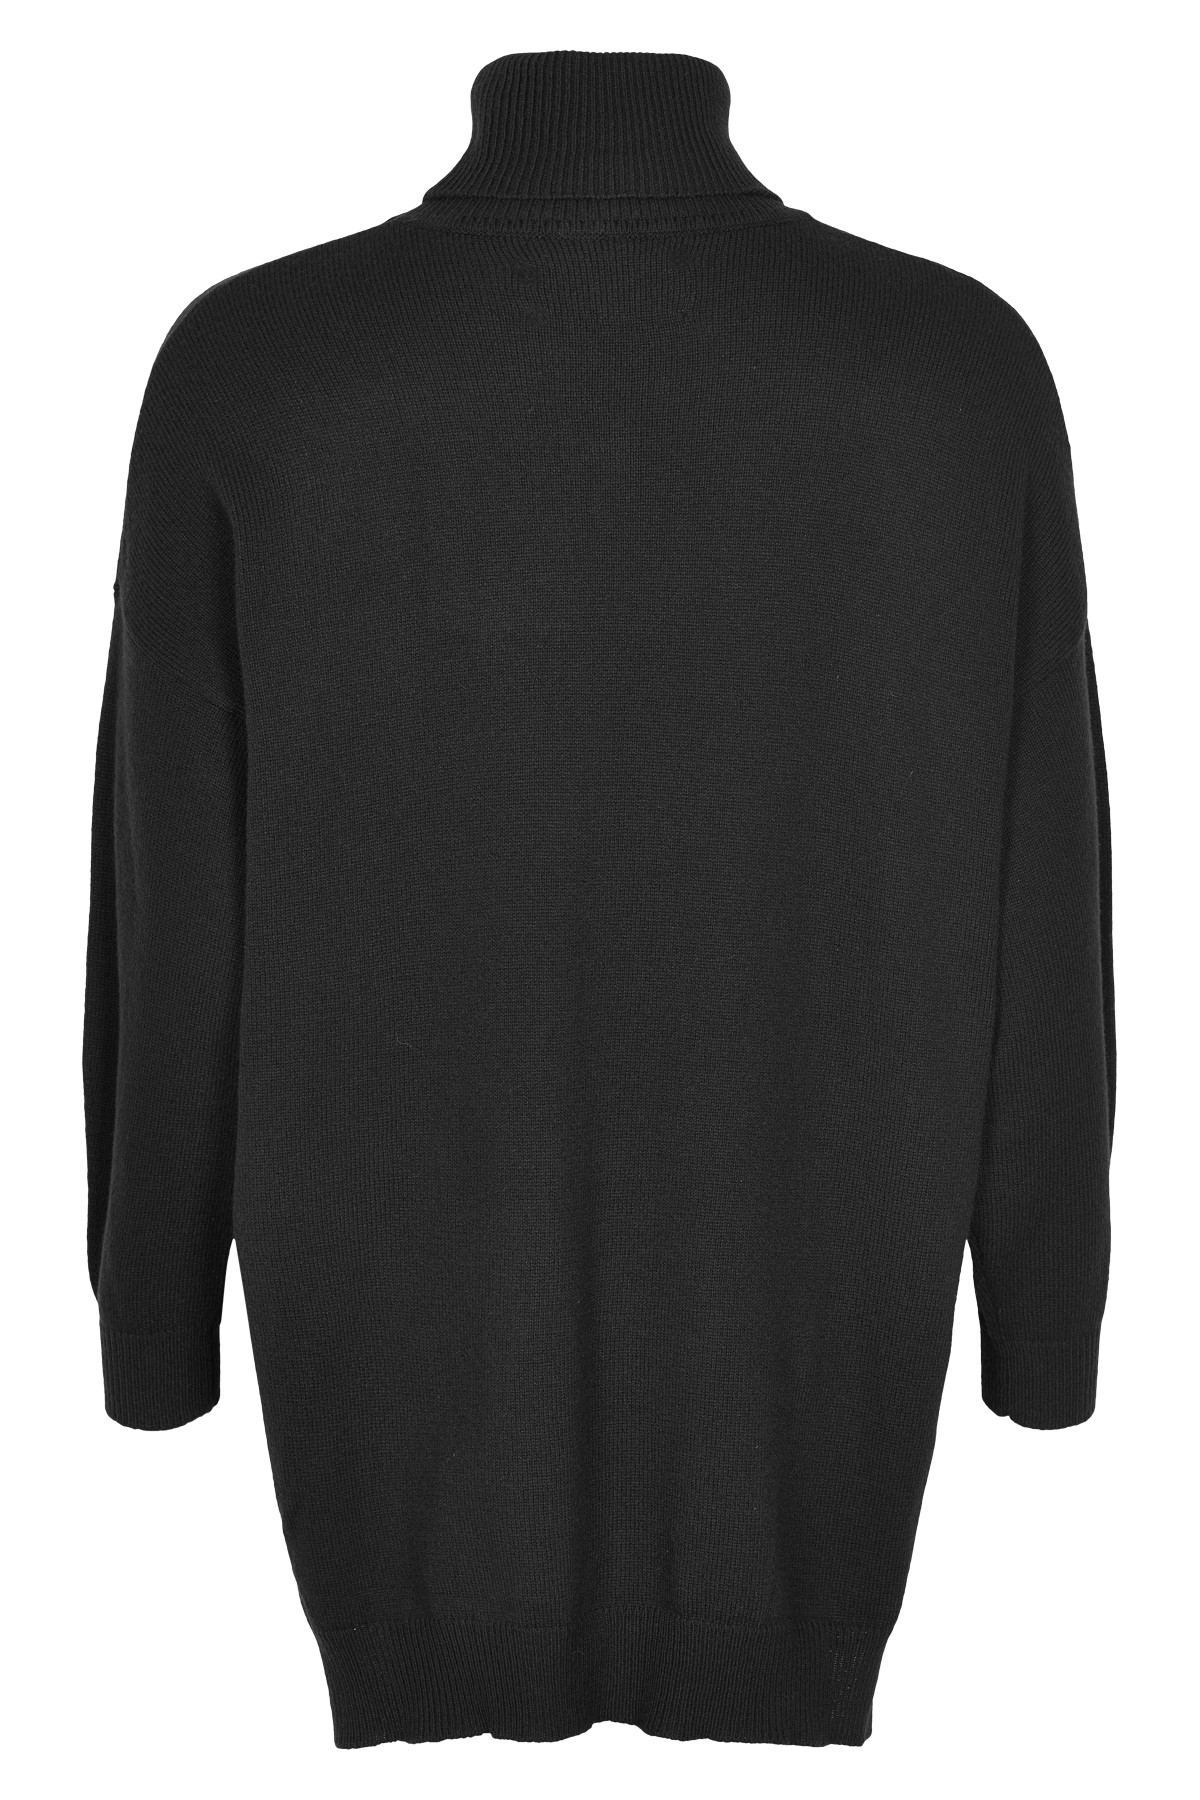 Image of   AND LESS ALLESHA PULLOVER 5519214 C (Caviar, L)